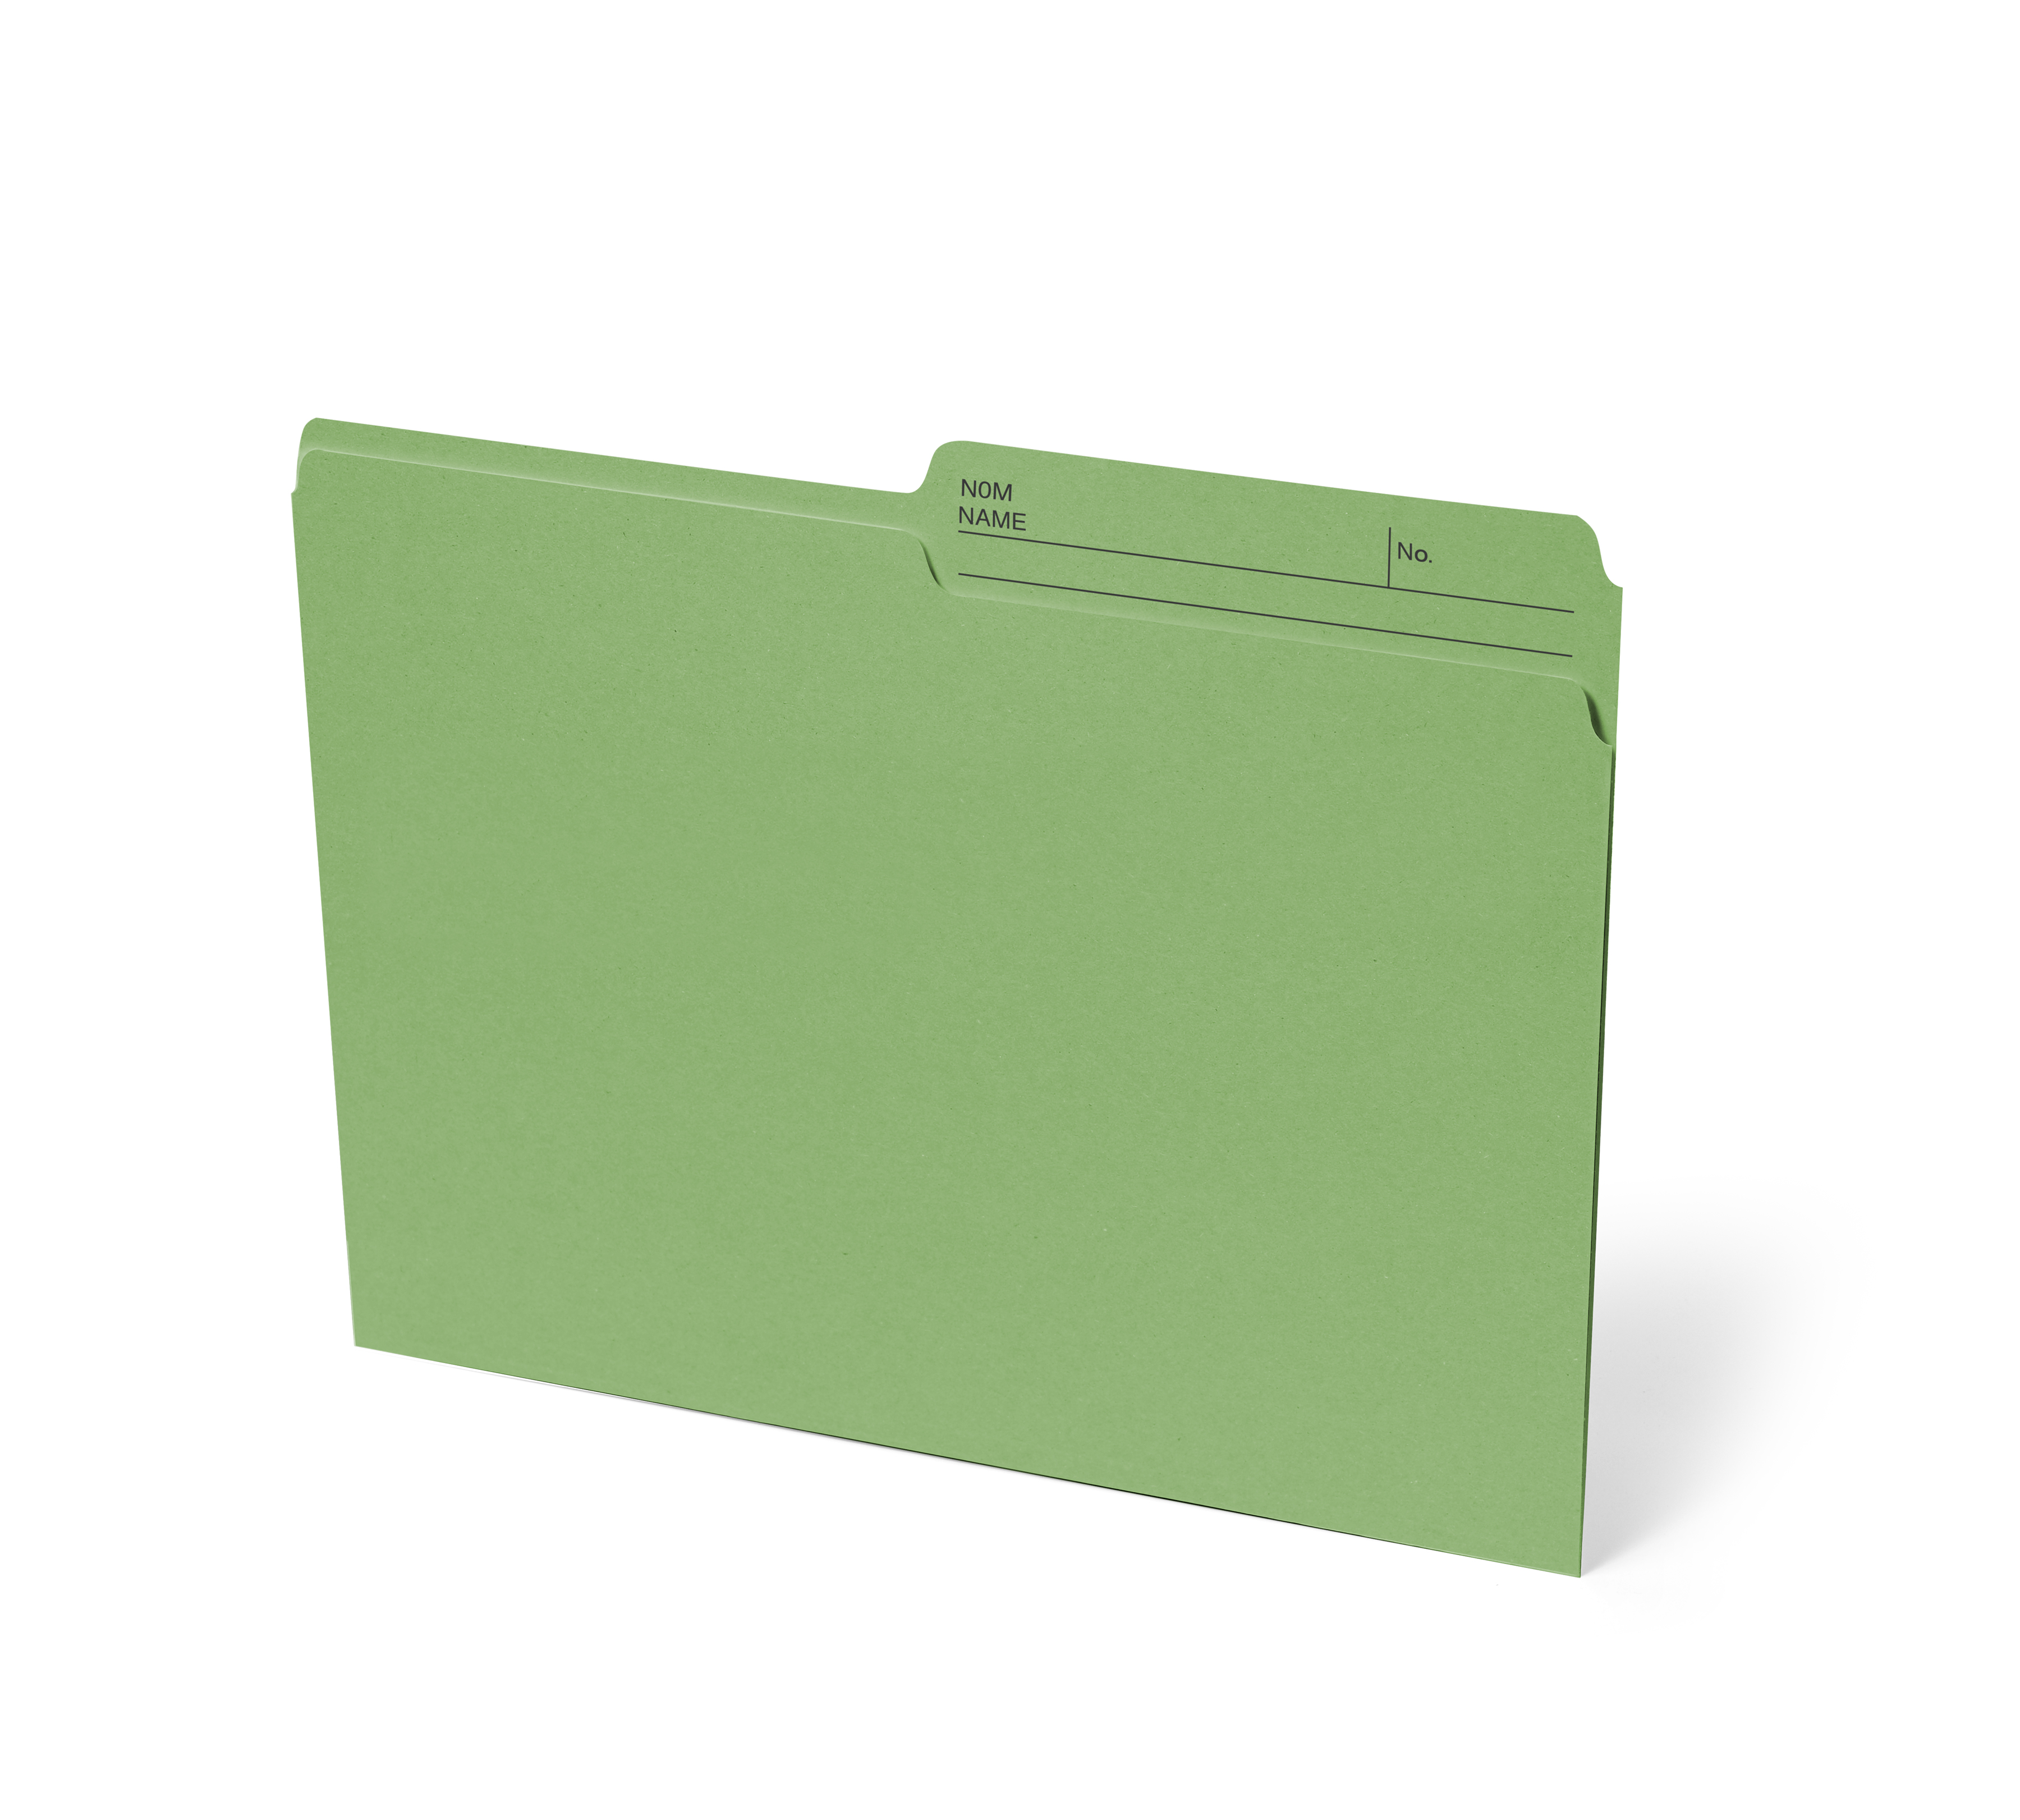 Chemises dossiers taille lettre onglet demi coupe - Couleur complementaire vert ...